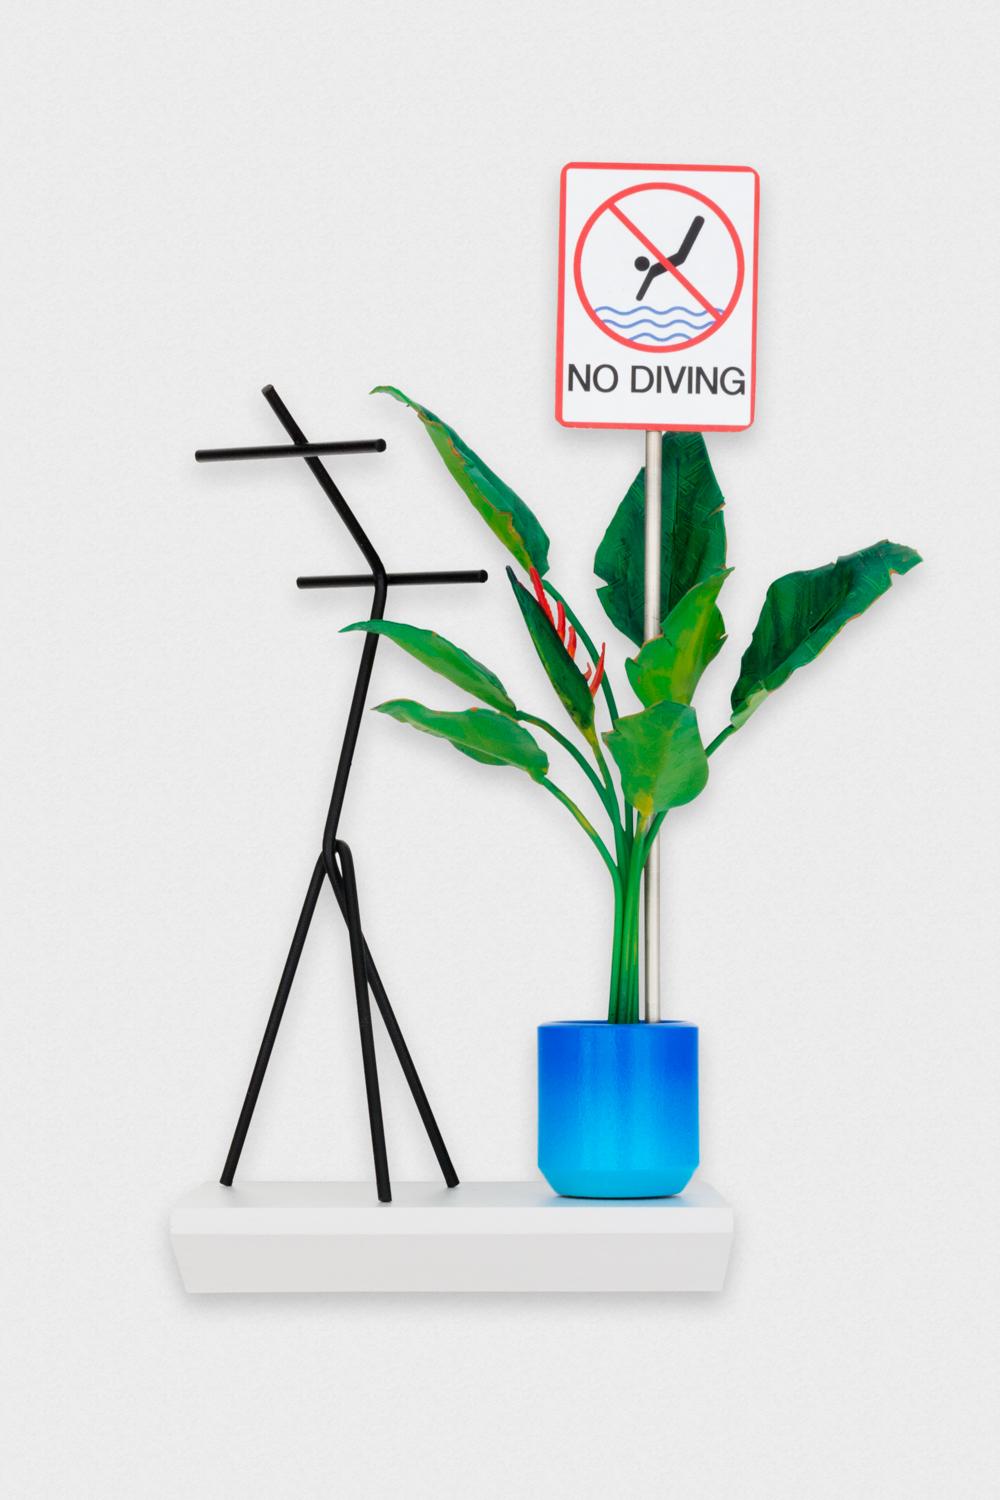 Chris Bradley  Paradise, A Bird with Modern Coat Rack (No Diving)  2017 Wood, steel, paint, stainless steel, laser jet print 9h x 5w x 4d in CB249